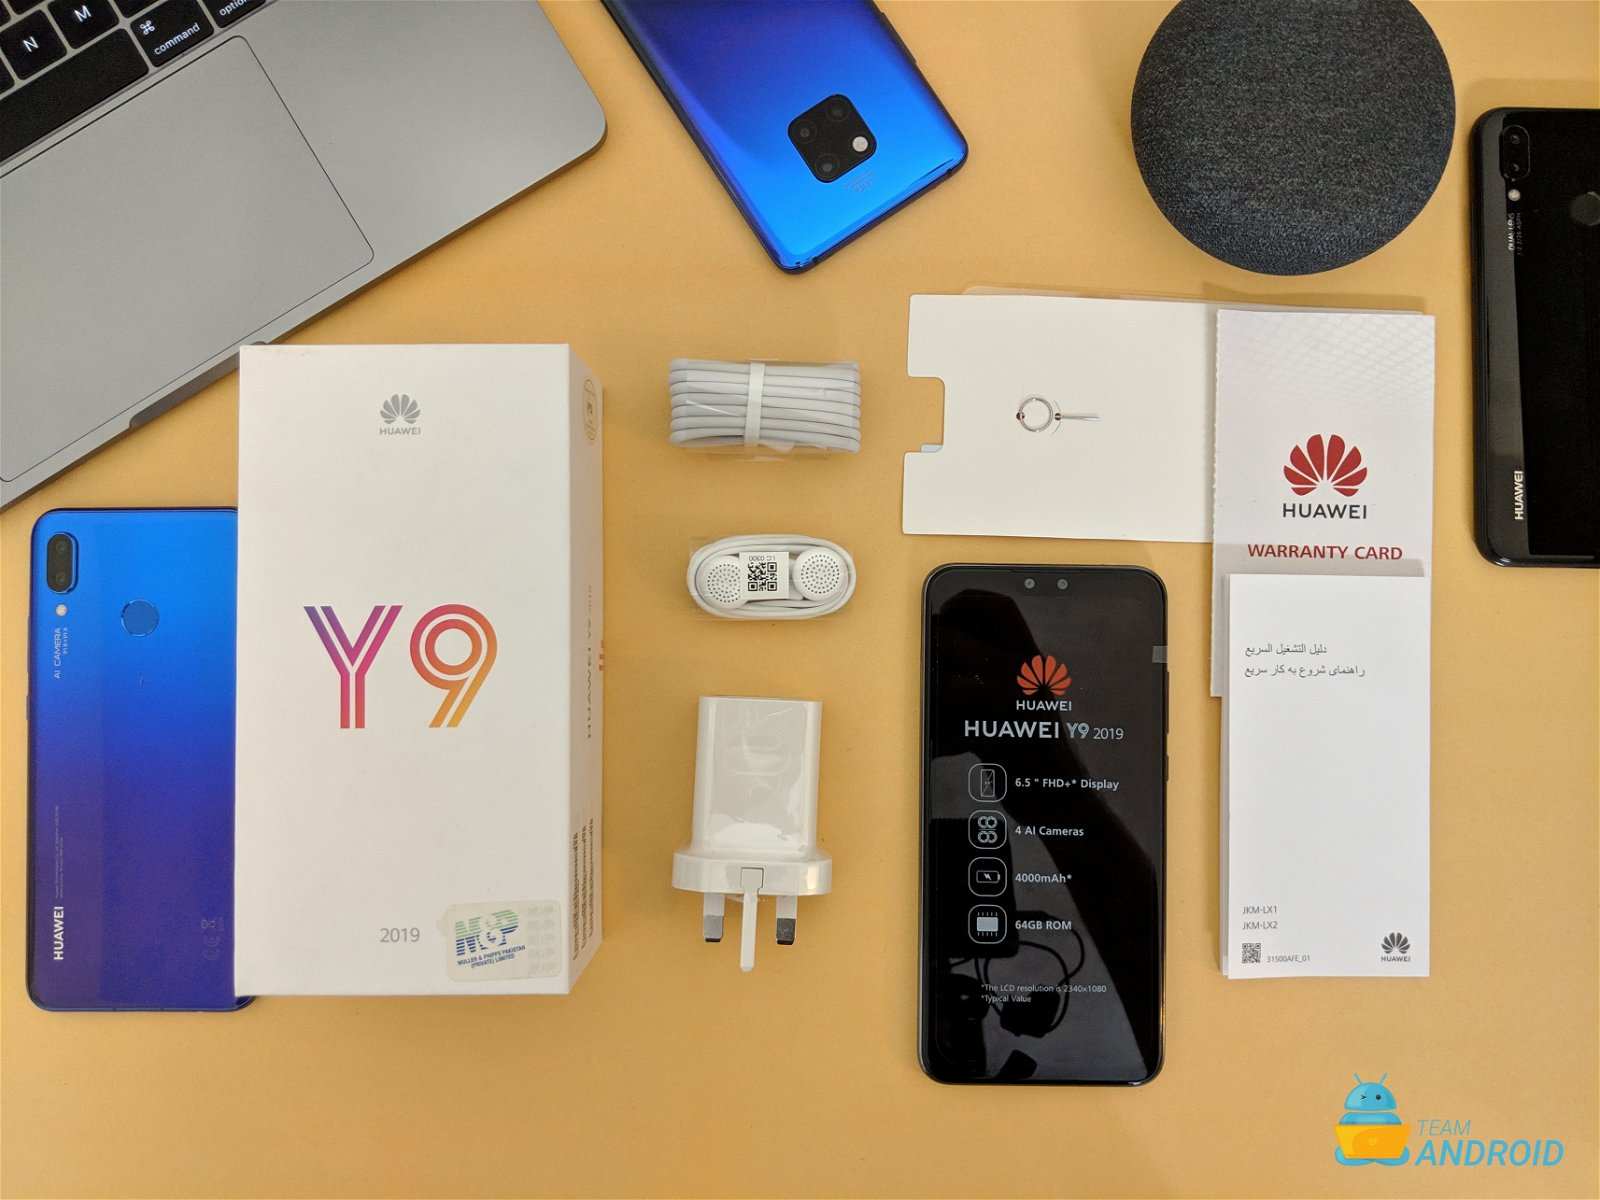 Huawei Y9 2019 Review: The Best Entry-Level Phone Get Even